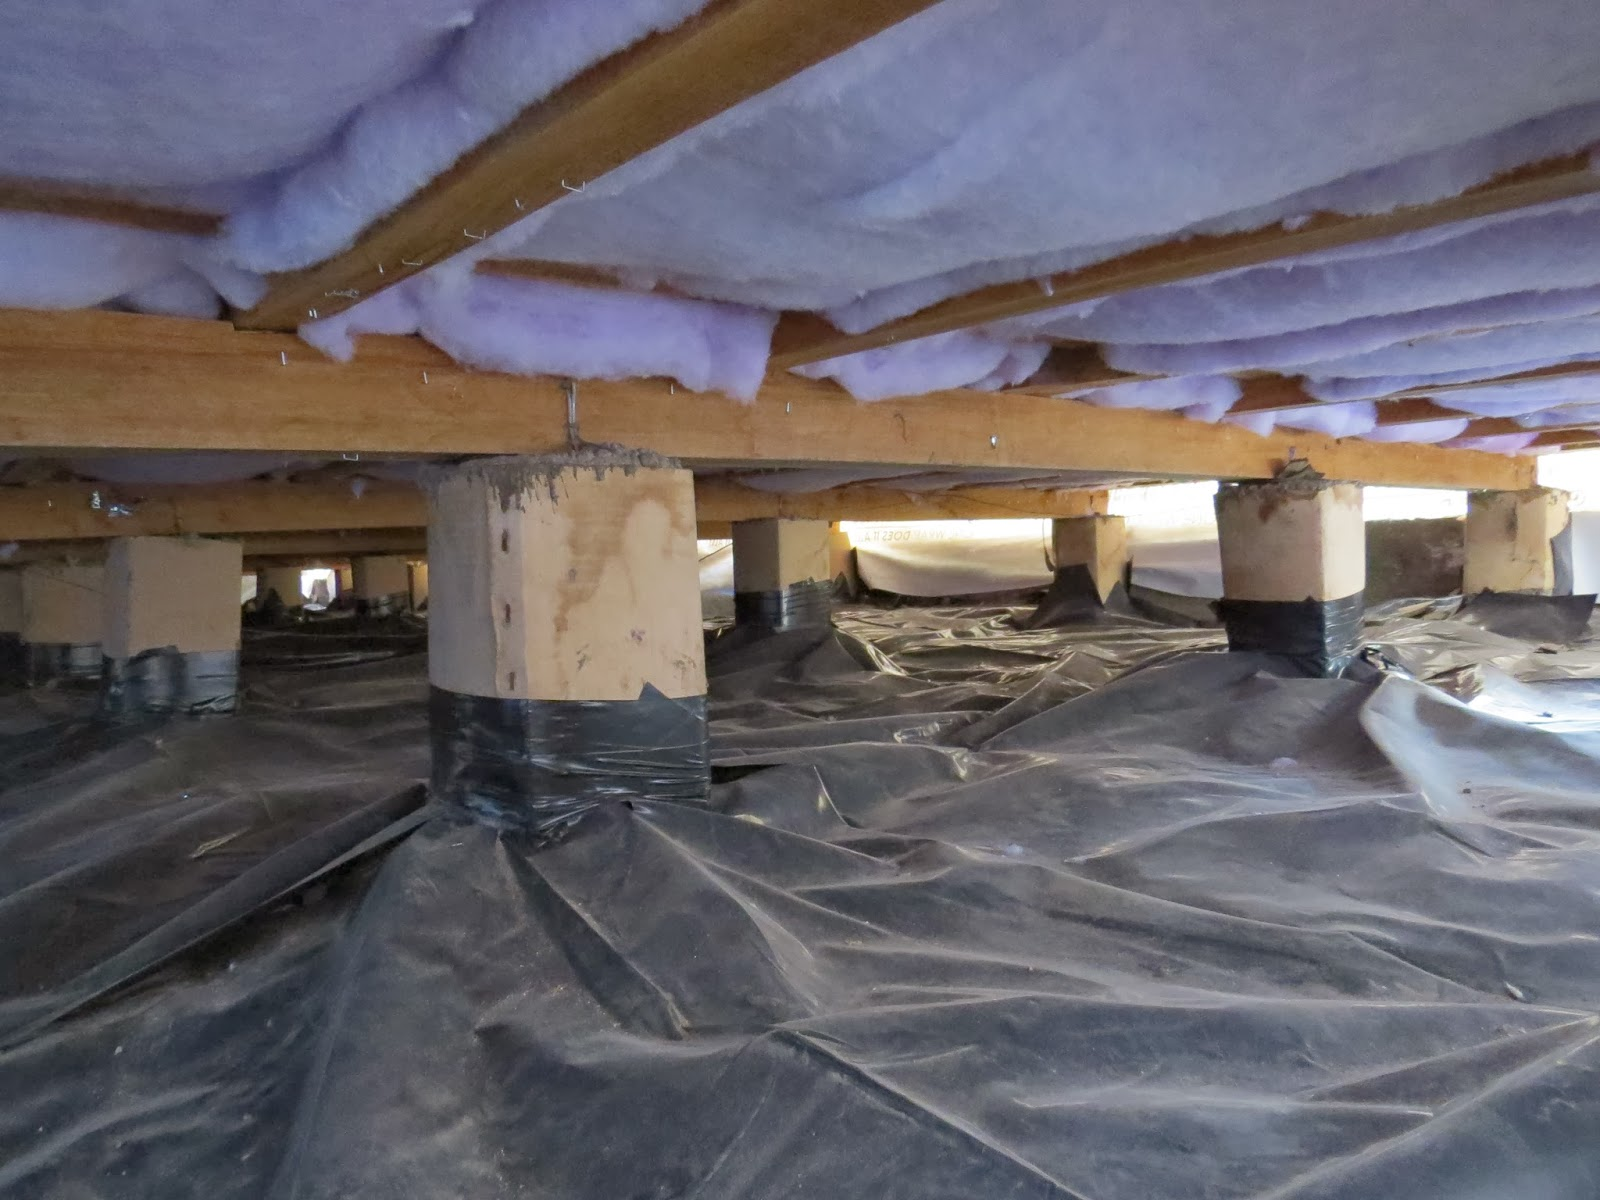 Ground Sheet Bunnings Vapour Barrier Or Underfloor Insulation The Beacon Blog